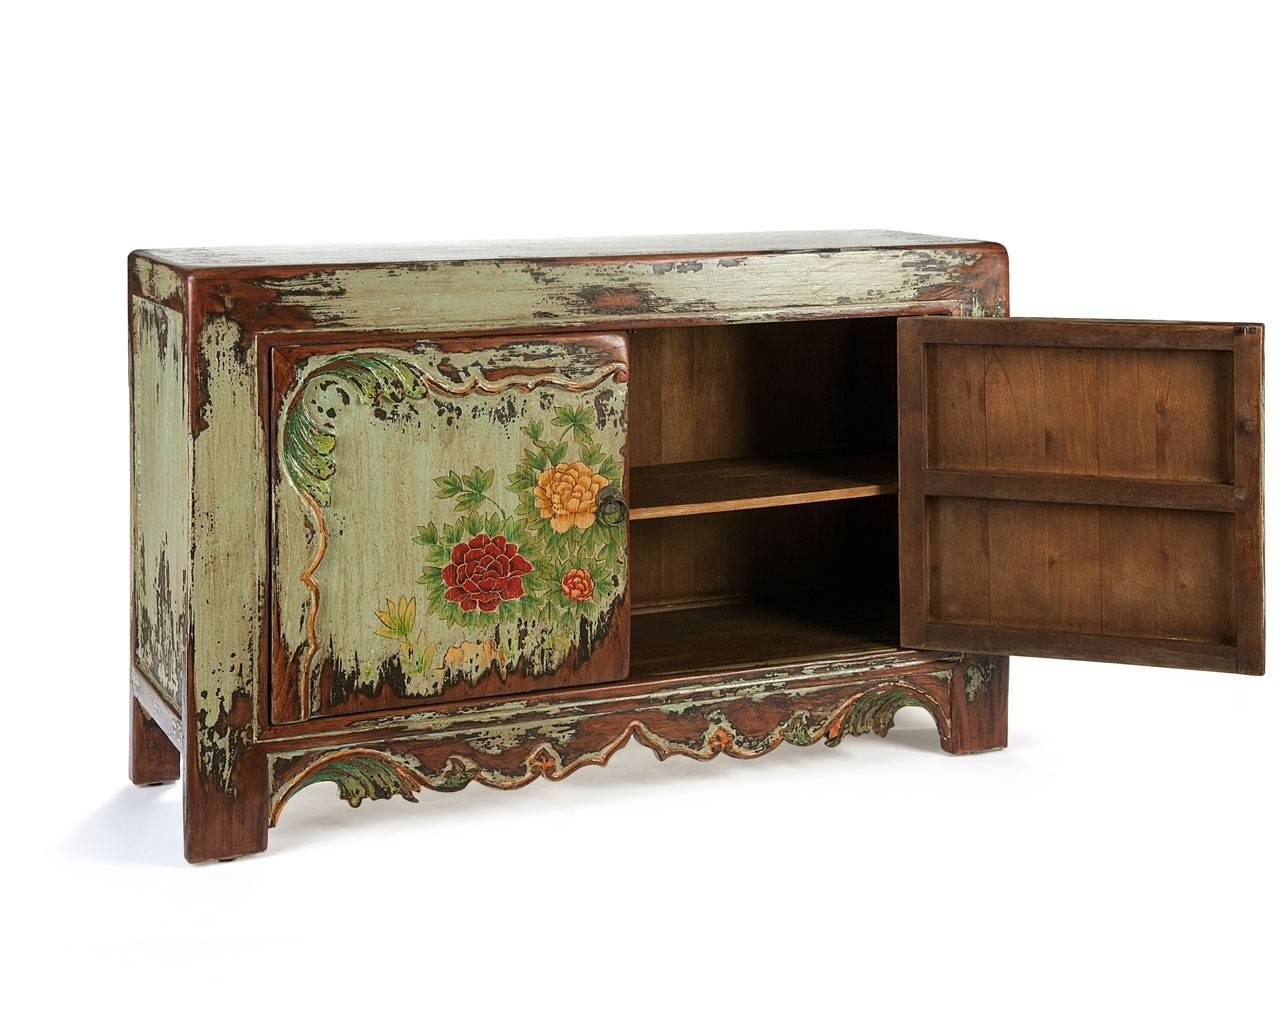 Hand Painted Sideboard - Solid Wooden Furniture - Puji throughout Hand Painted Sideboards (Image 5 of 15)